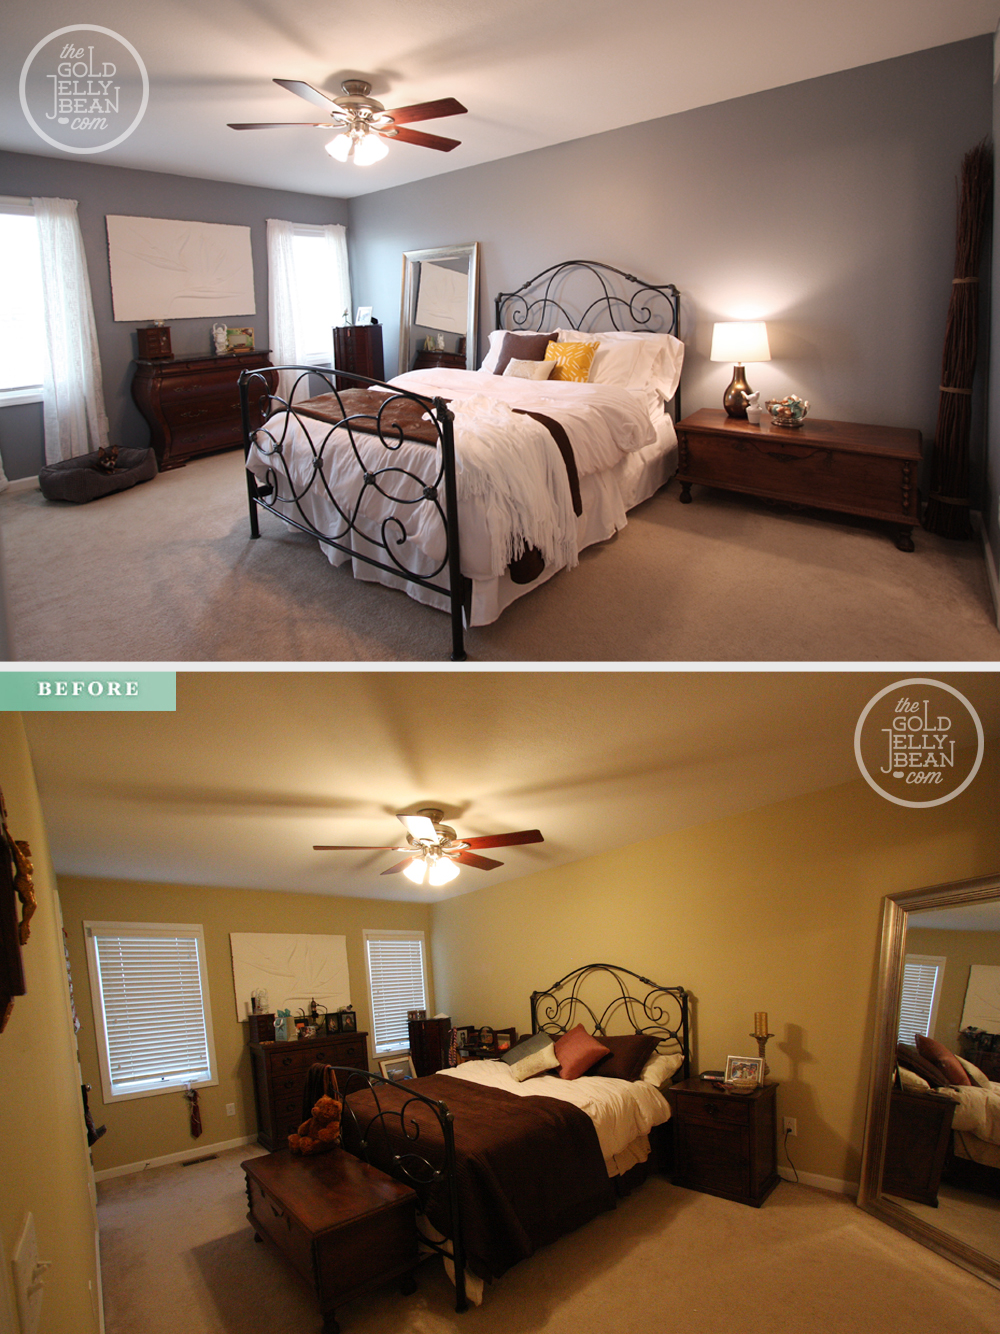 A quick bedroom makeover on a budget the gold jellybean Before and after interior design projects